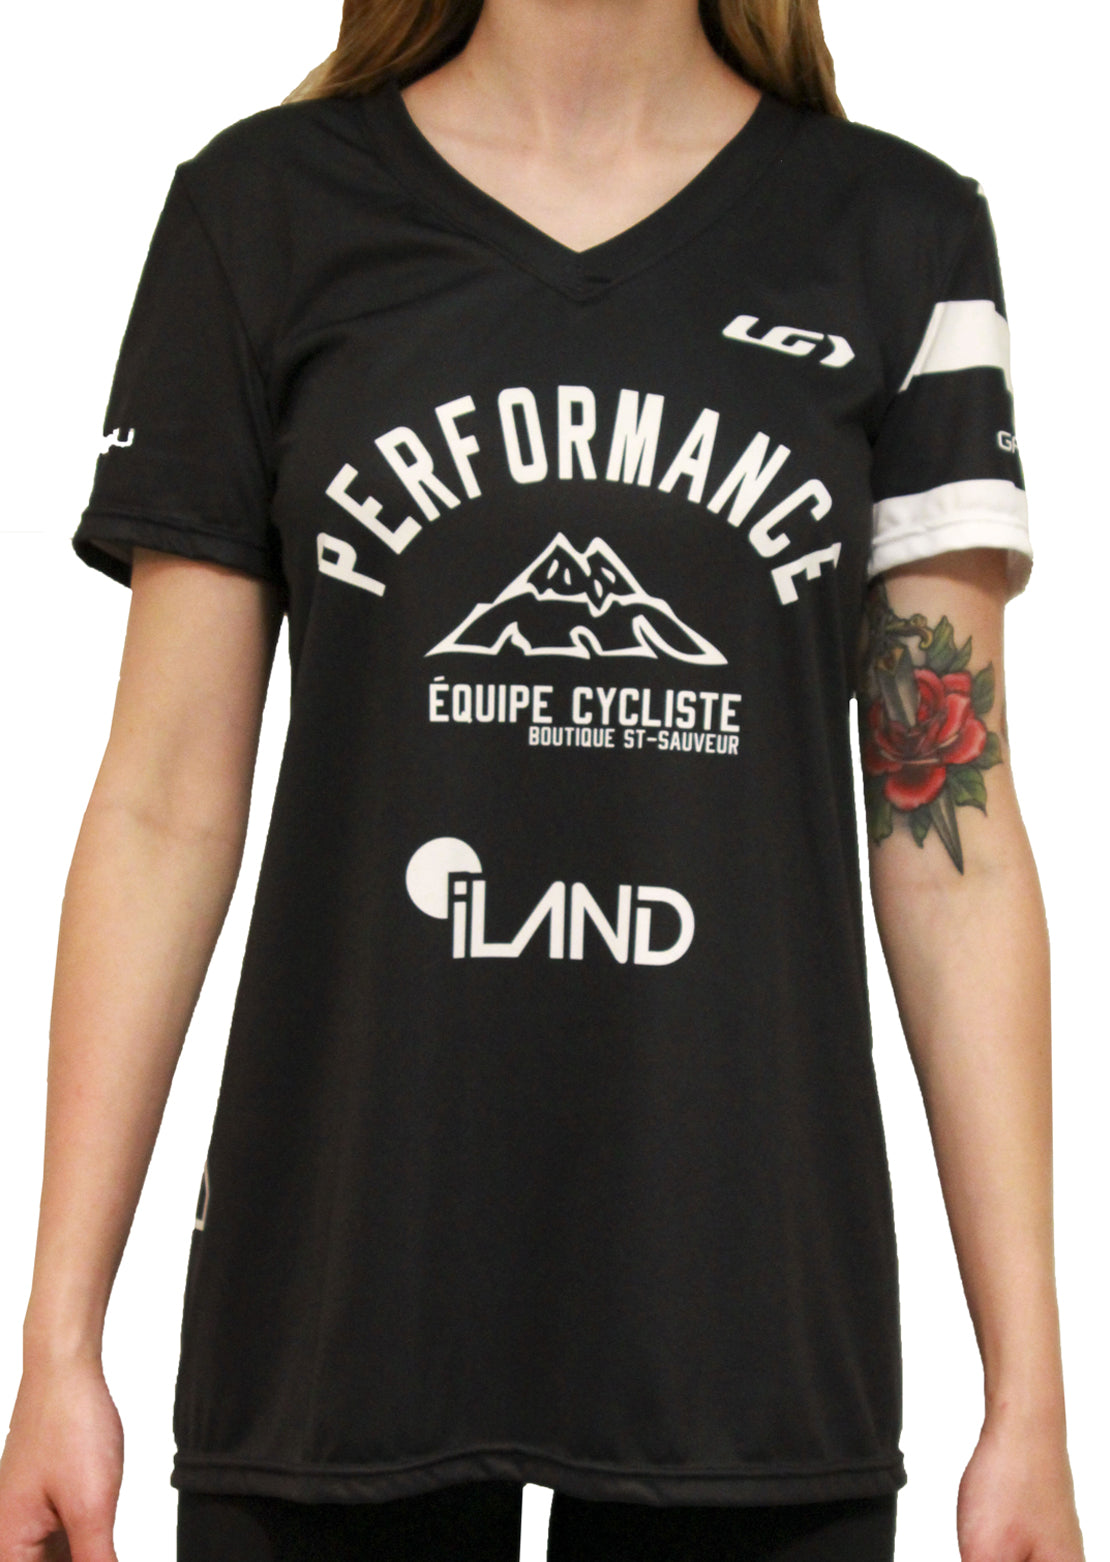 Garneau X PRFO Women's Team-T Zircon T-Shirt Black/White